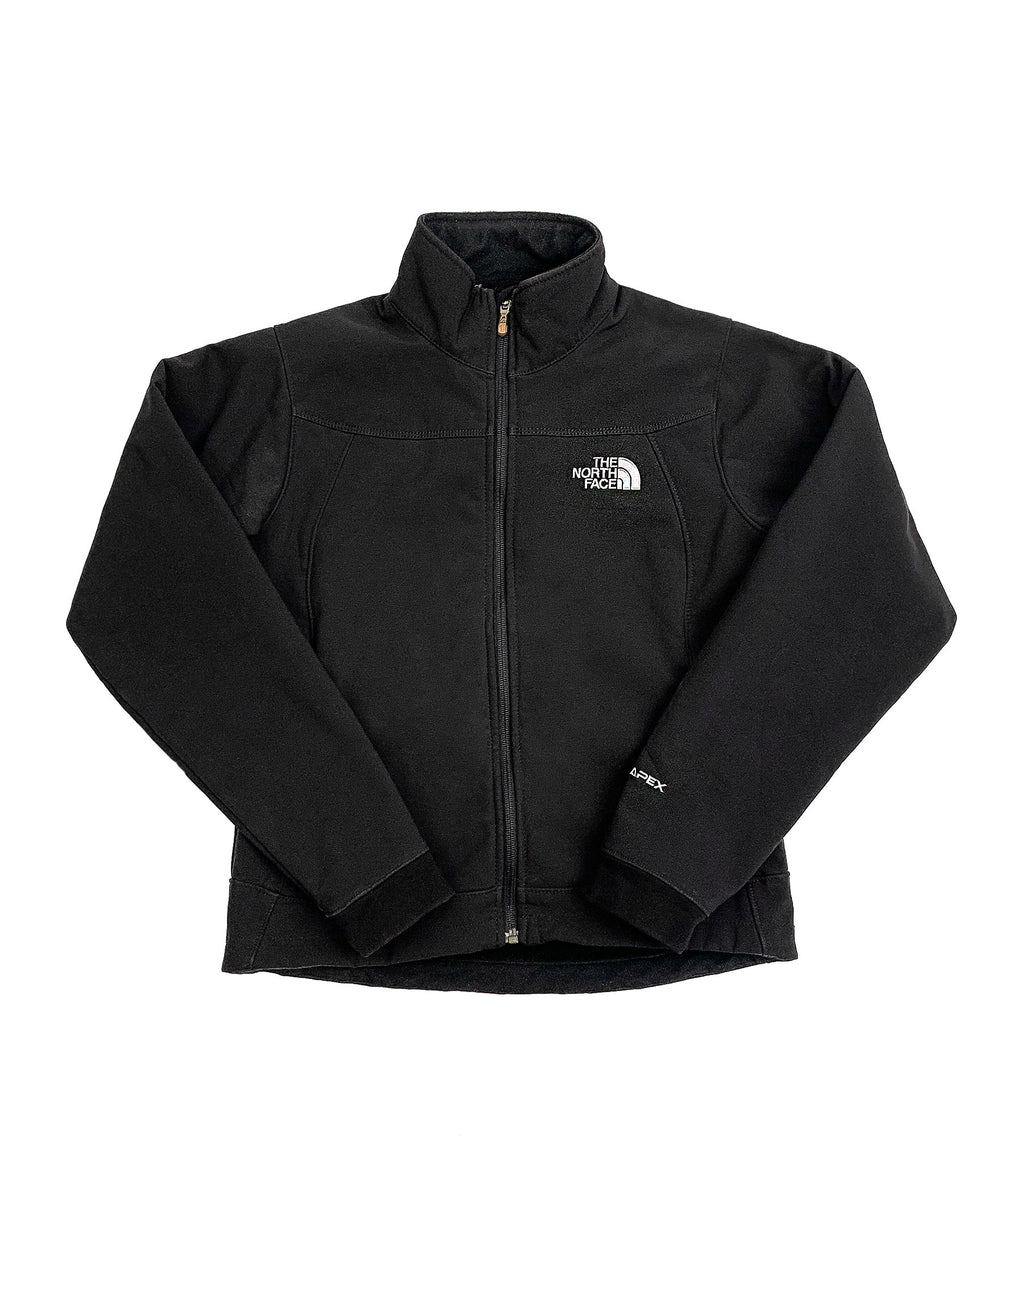 NORTH FACE WATERPROOF JACKET